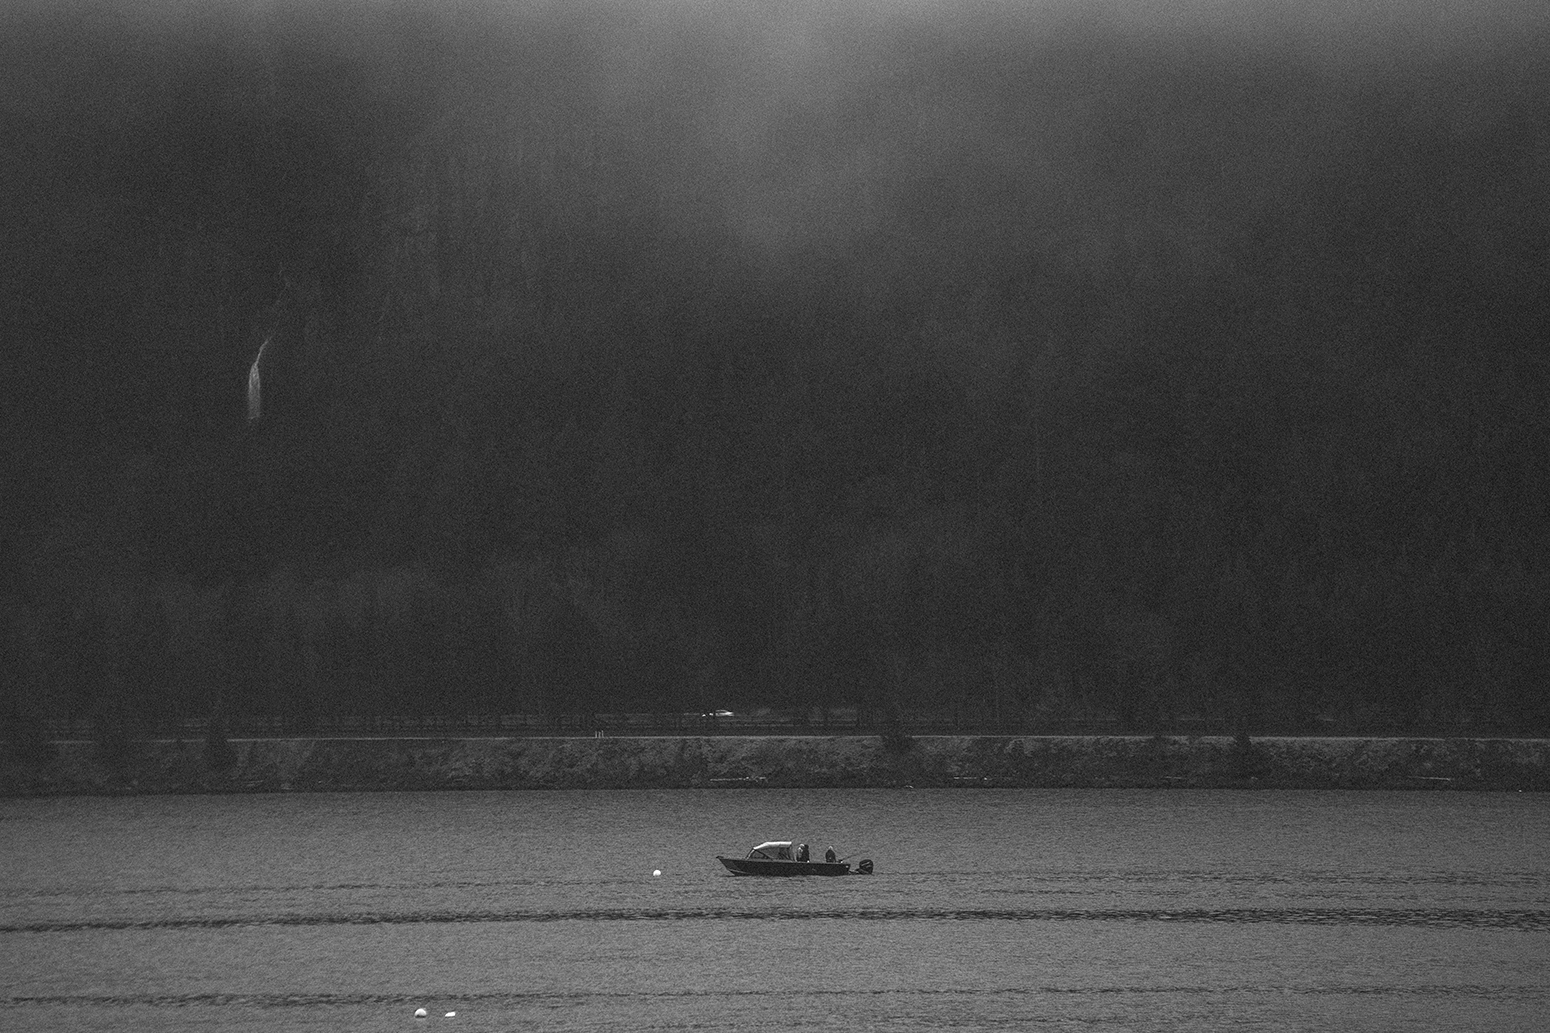 Fishing boat on Columbia River